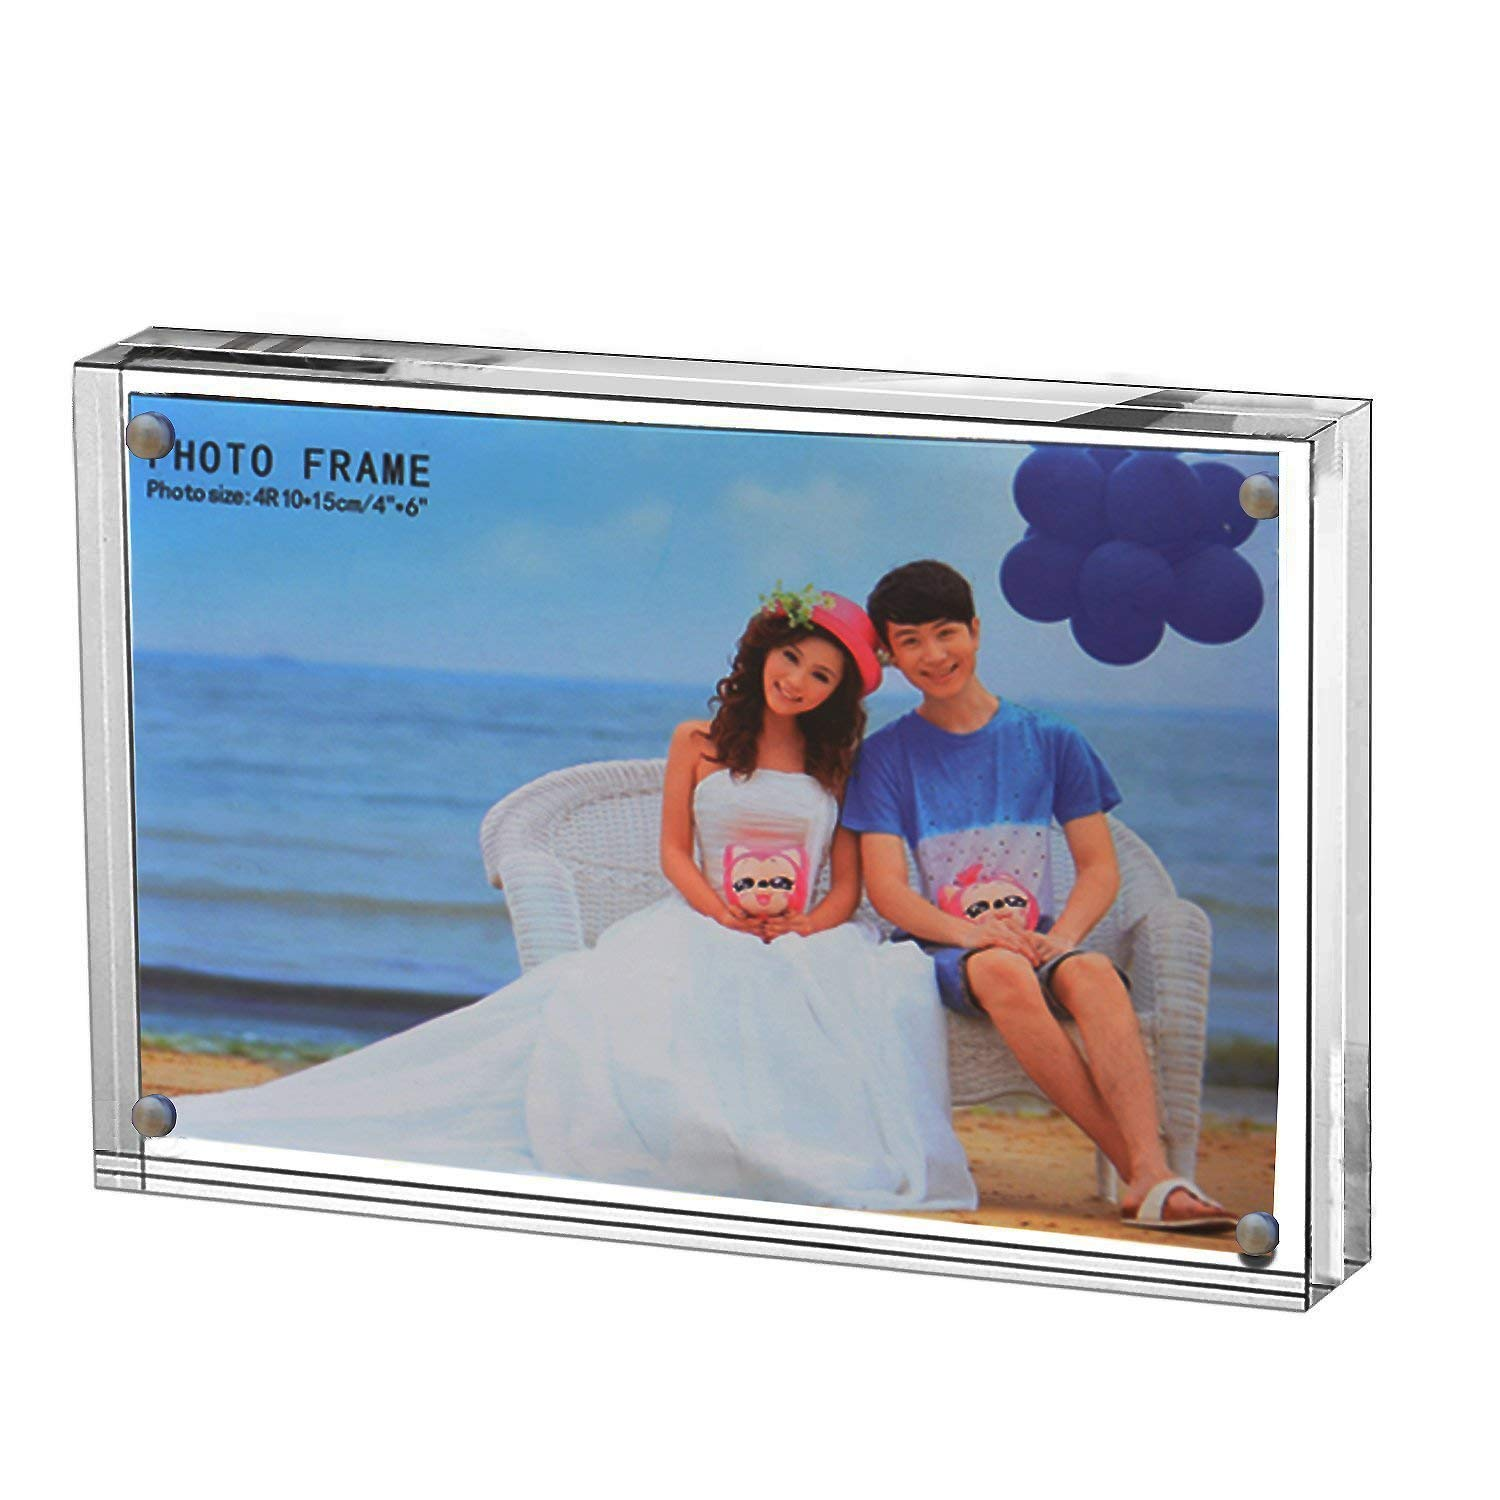 Yakri crafts Free Standing Magnetic Acrylic Photo Frames,plexiglass Photo Prints (10, 5X7)